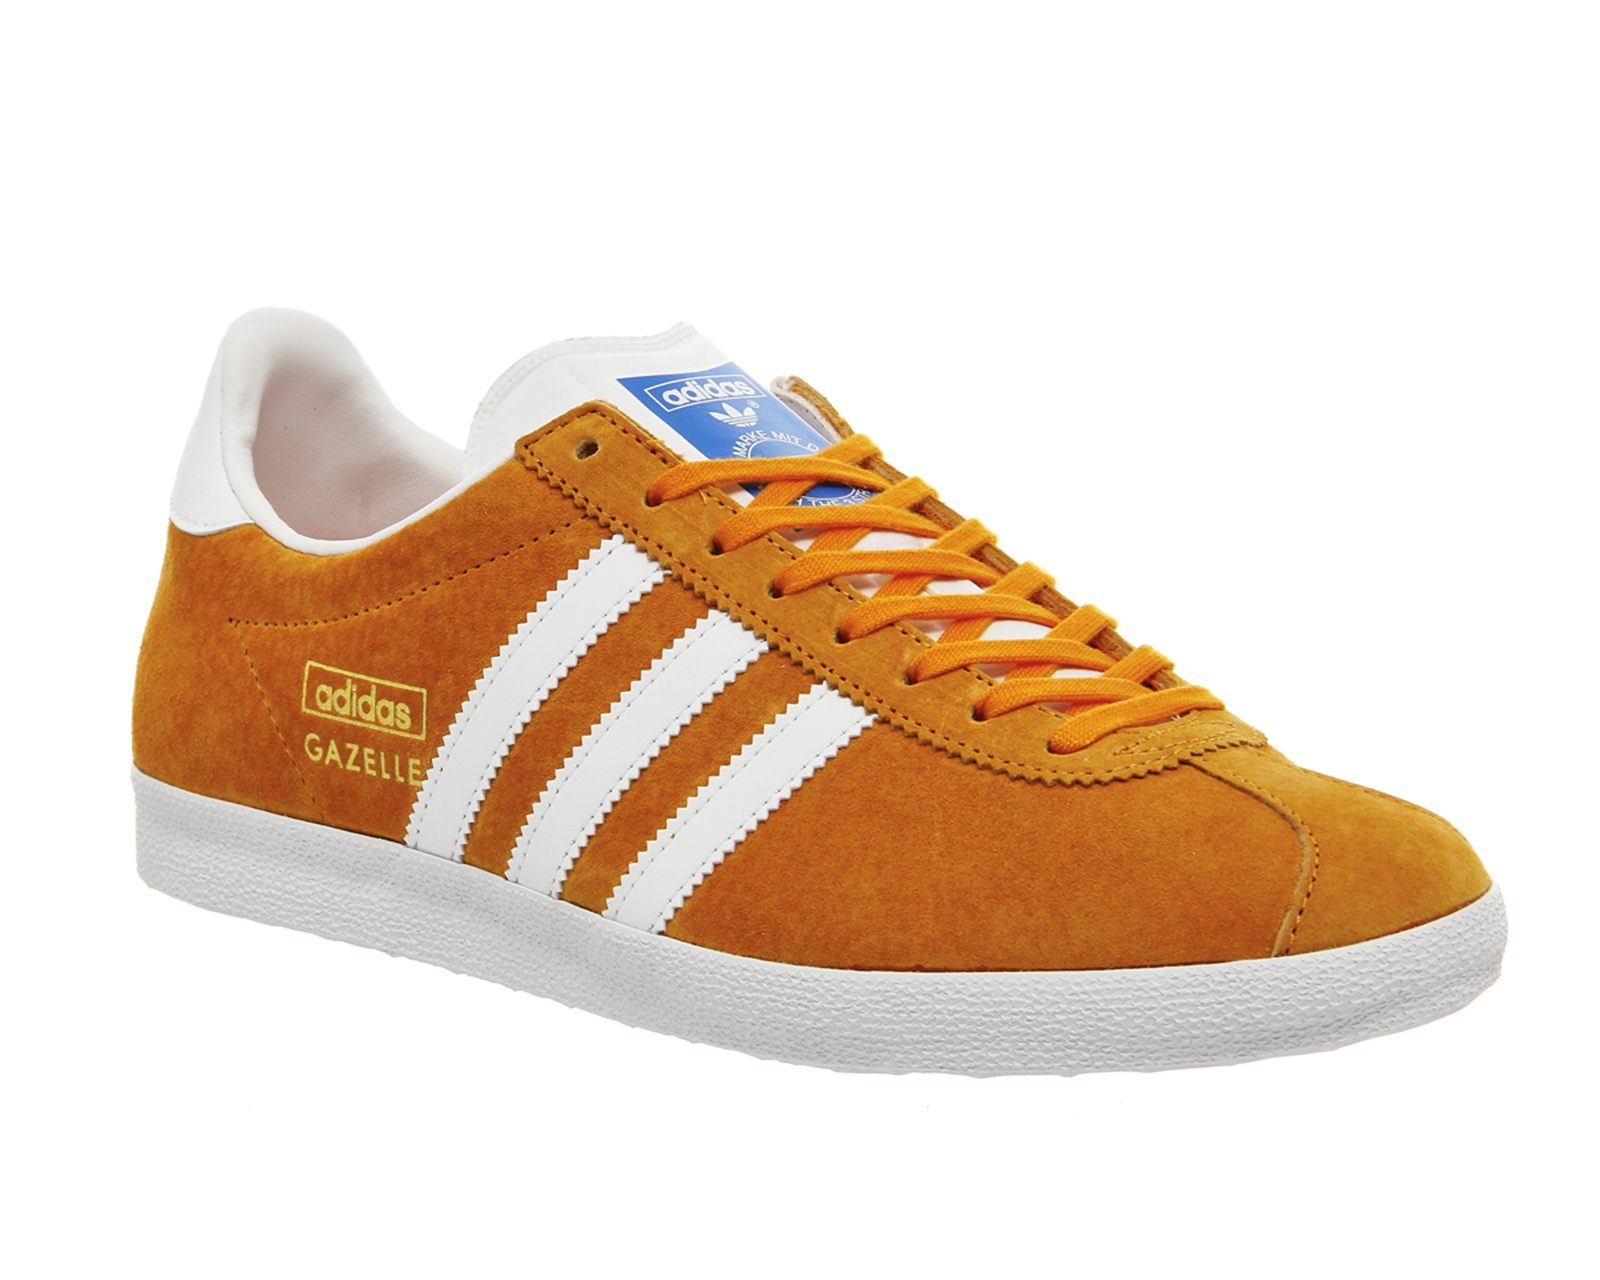 Mens-Adidas-Gazelle-Og-BRIGHT-ORANGE-WHITE-Trainers-